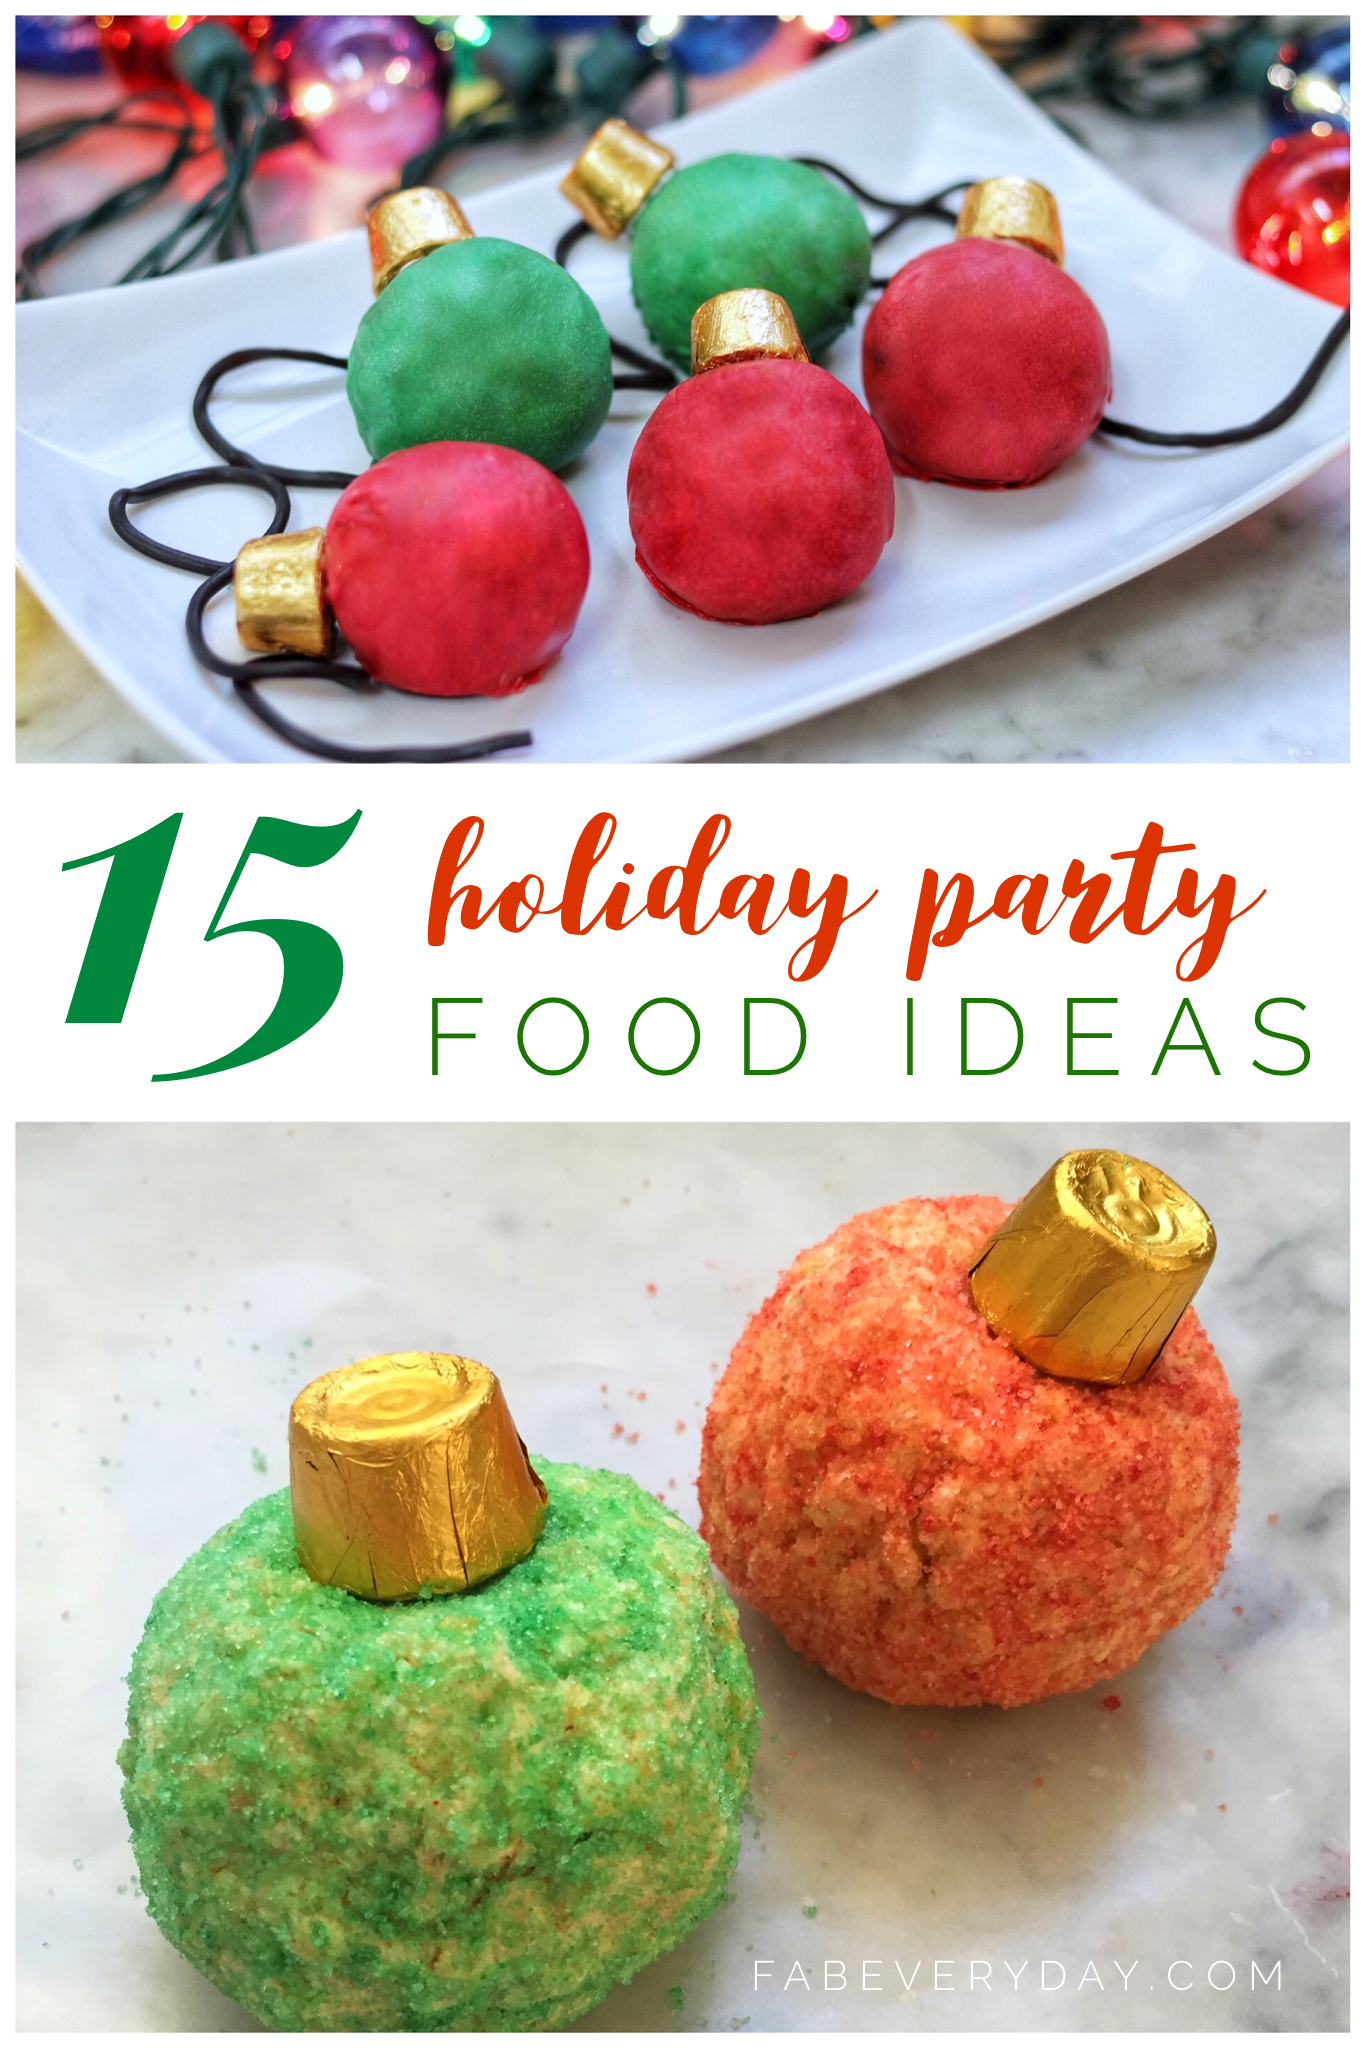 15 Fun And Easy Christmas Party Food Ideas Fab Everyday